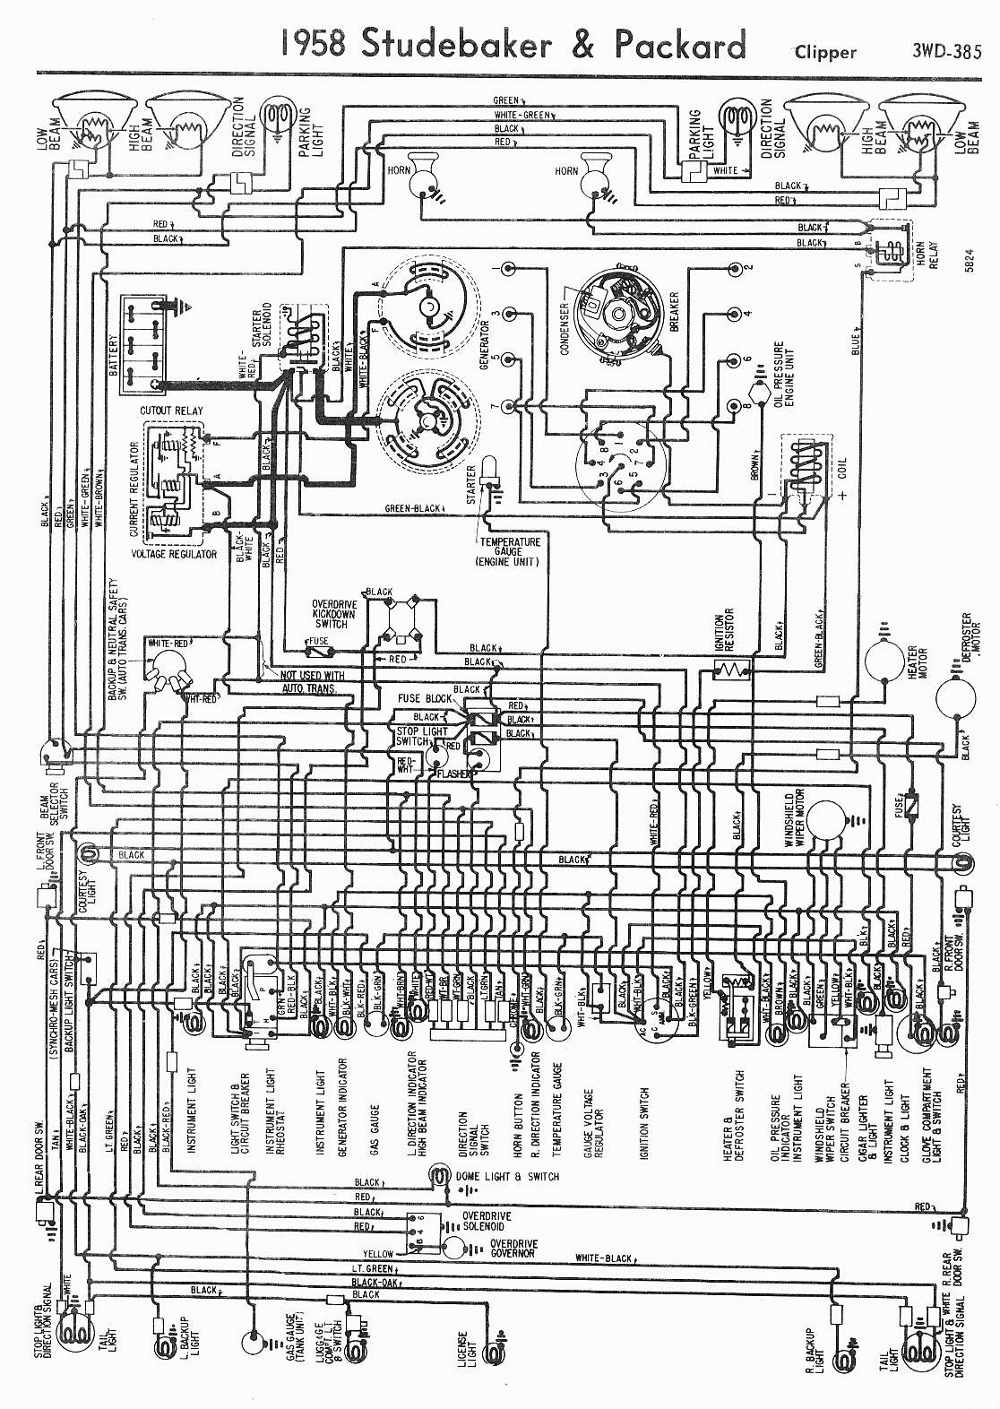 Hurst Shifter Diagram Free Download Wiring Diagrams Pictures